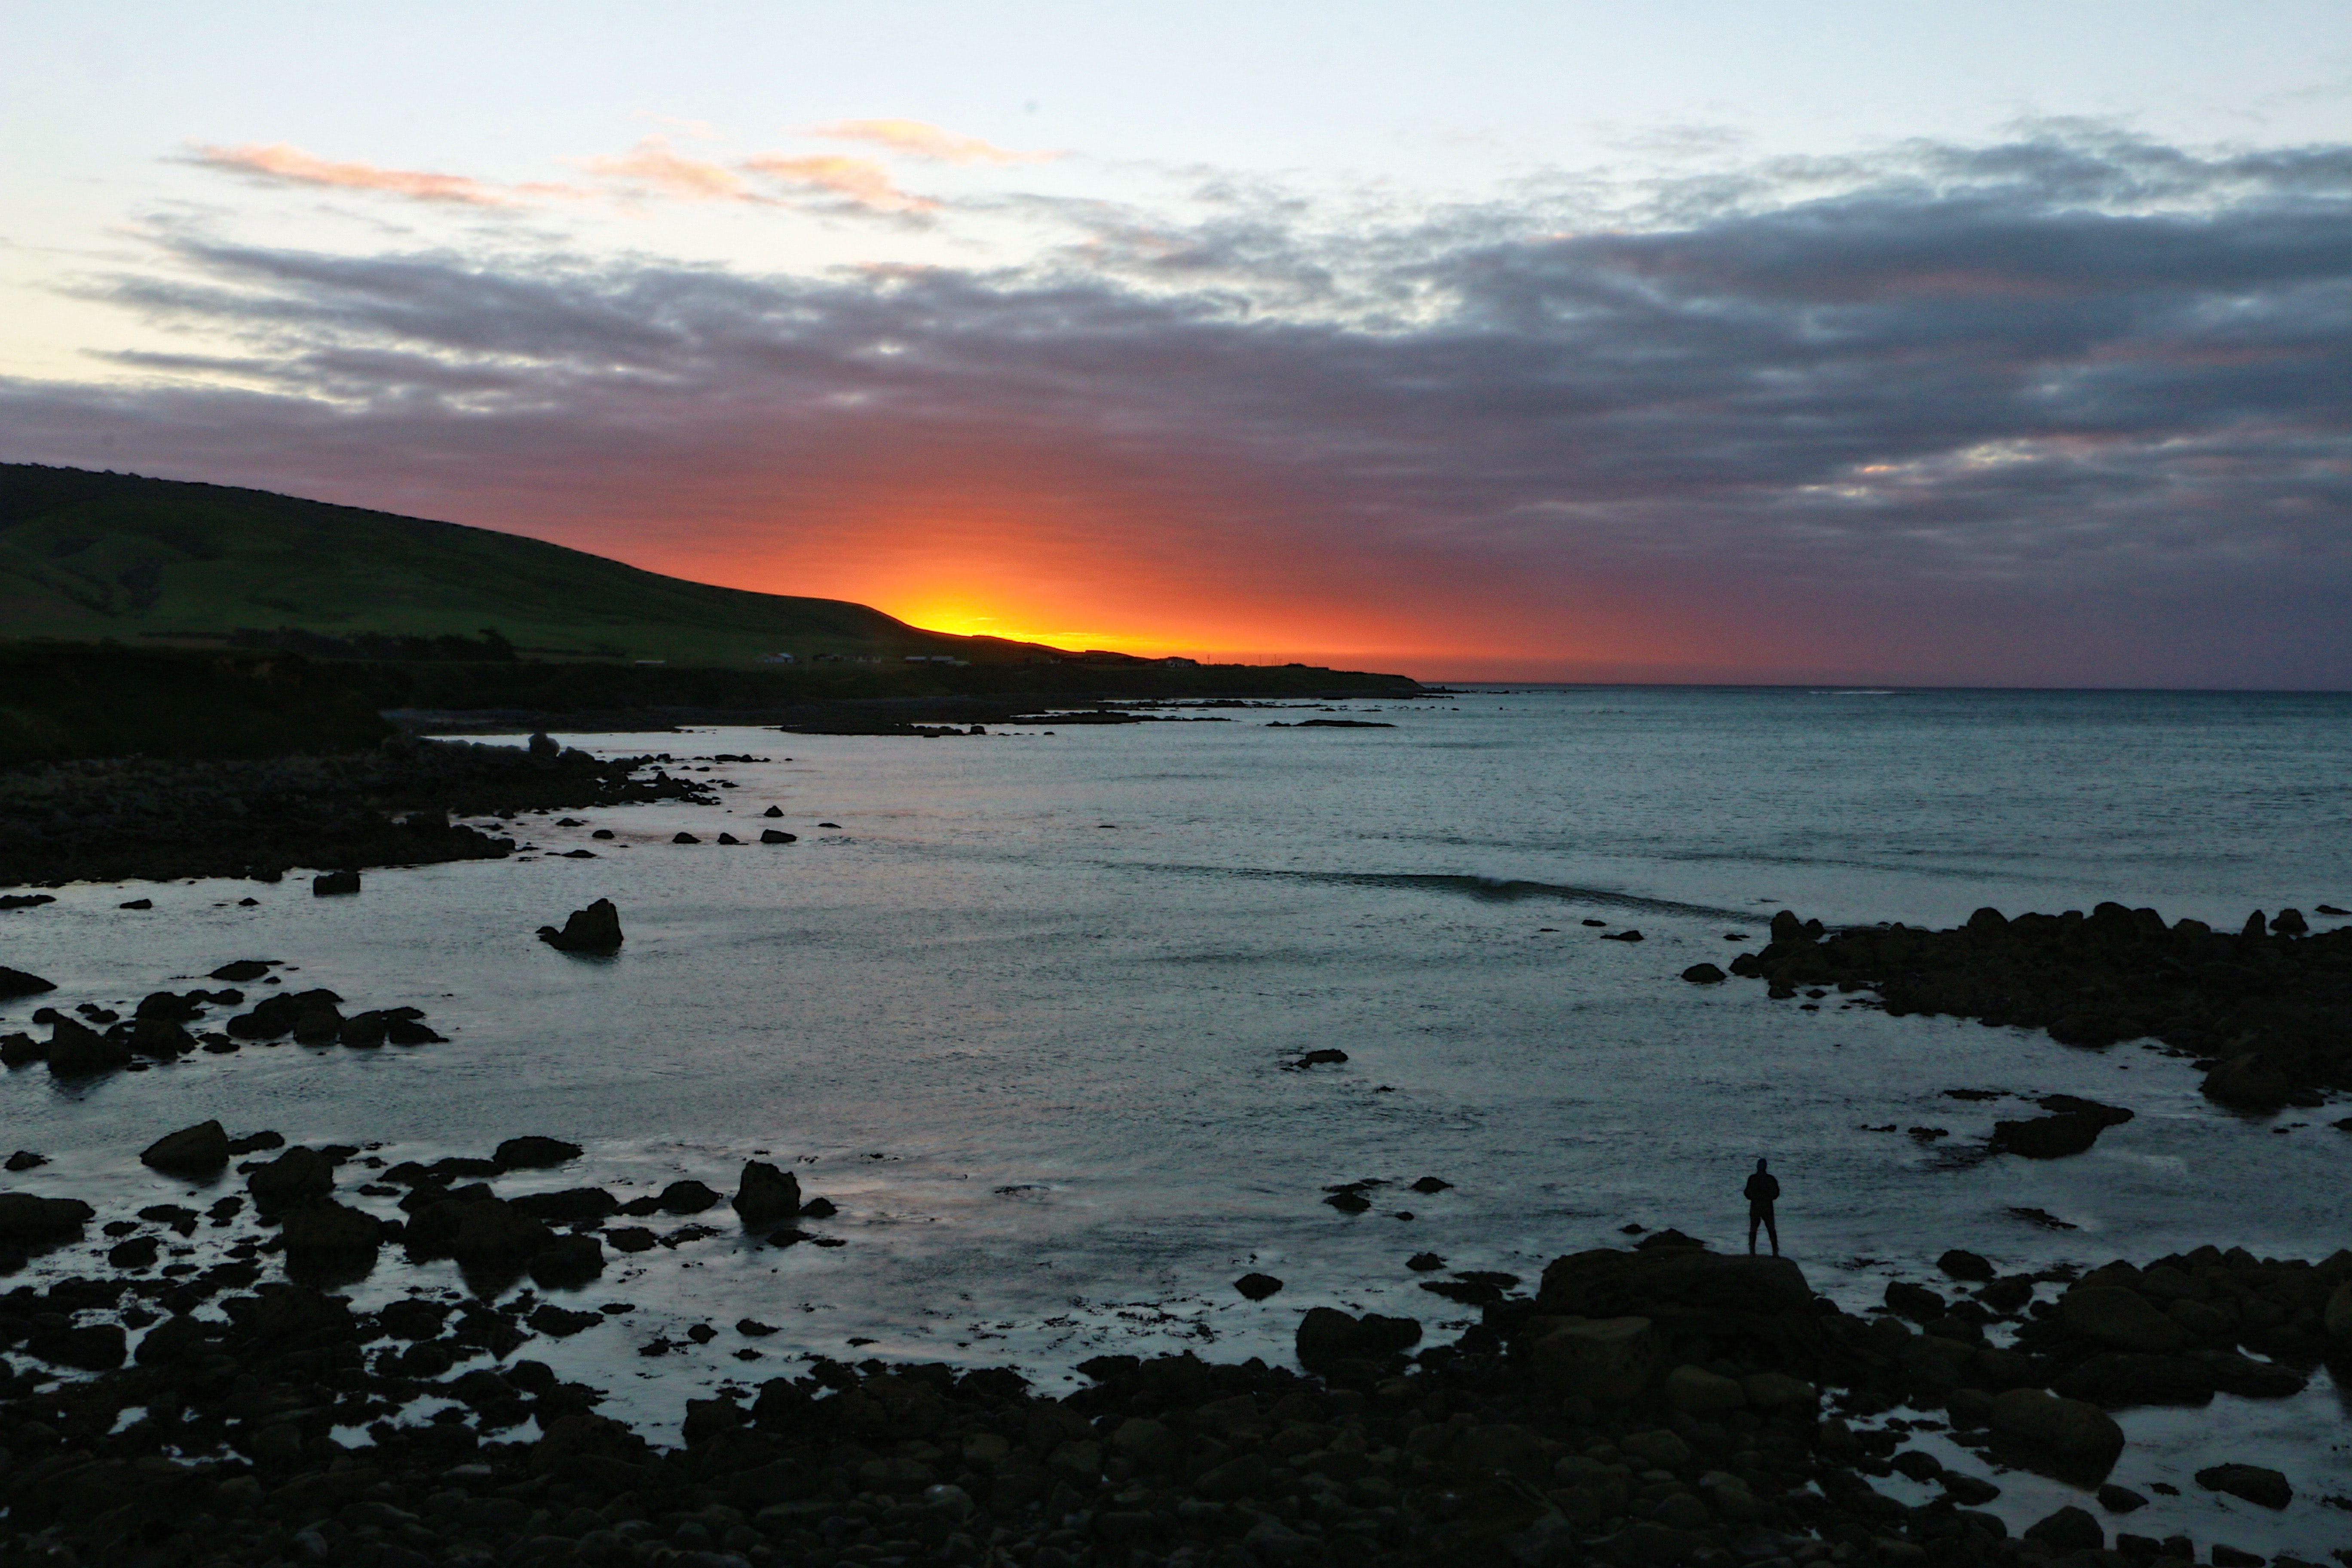 Distant shot of a person standing on a rocky beach as clouds gather, sun sets behind a far mountain